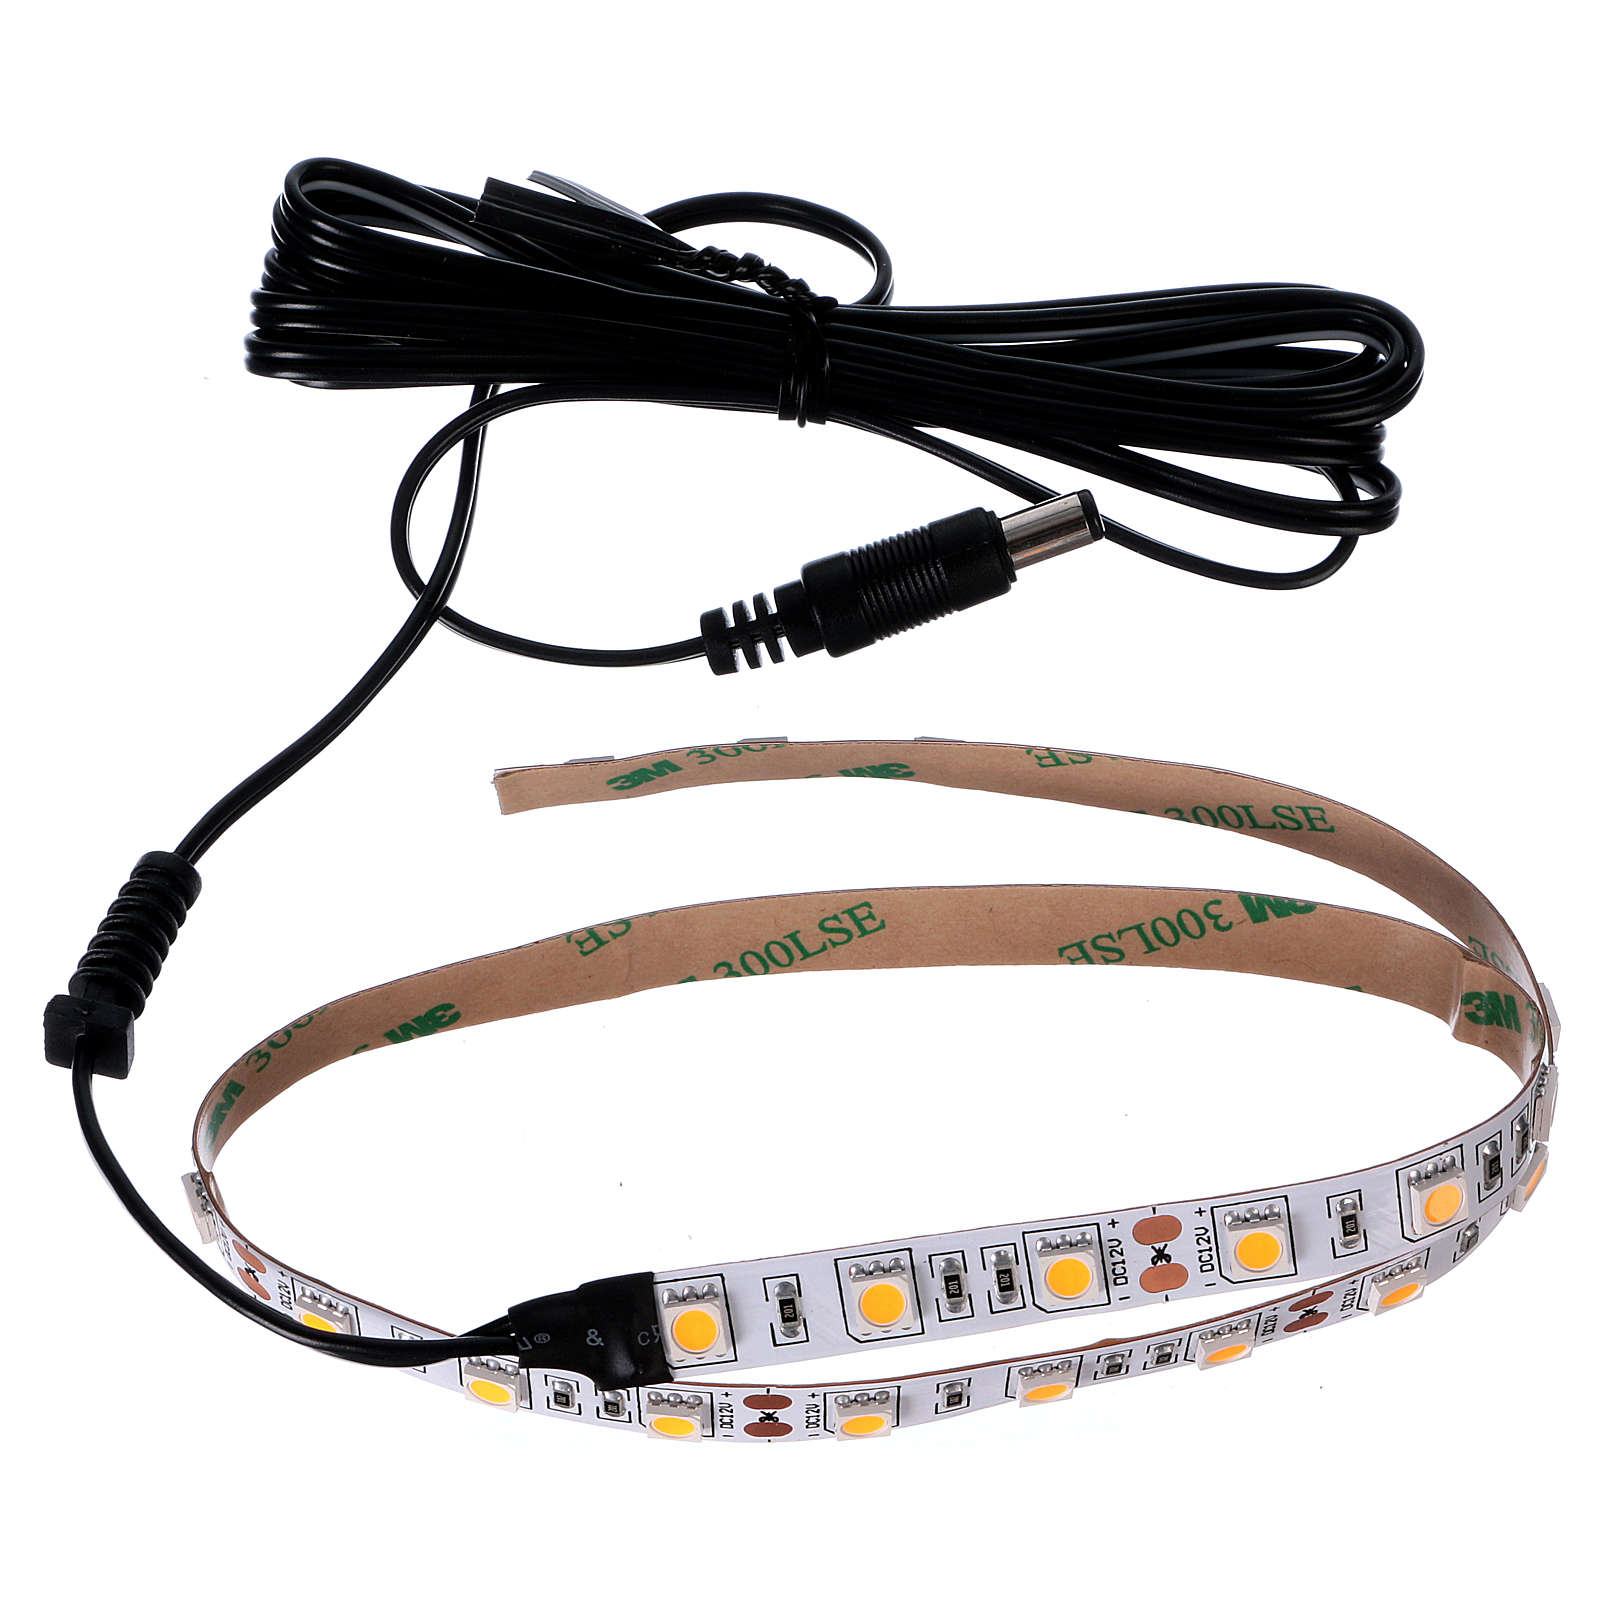 30 LEDs strip, warm white 12V 50 cm for Nativity scene 4